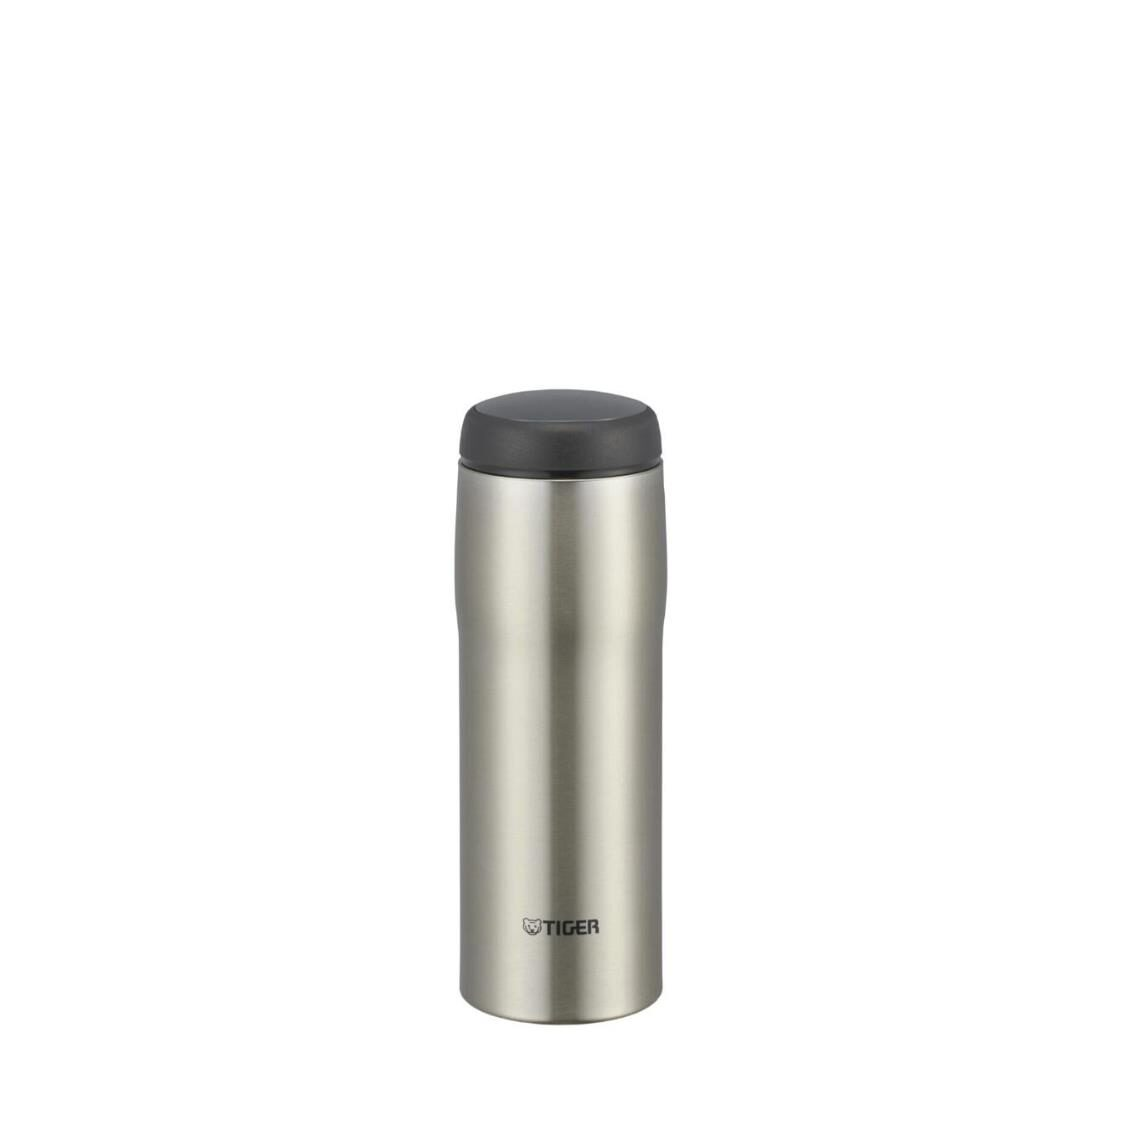 Tiger 360ml Stainless Steel Mug - Clear Stainless Made in Japan MJA-B048 XC